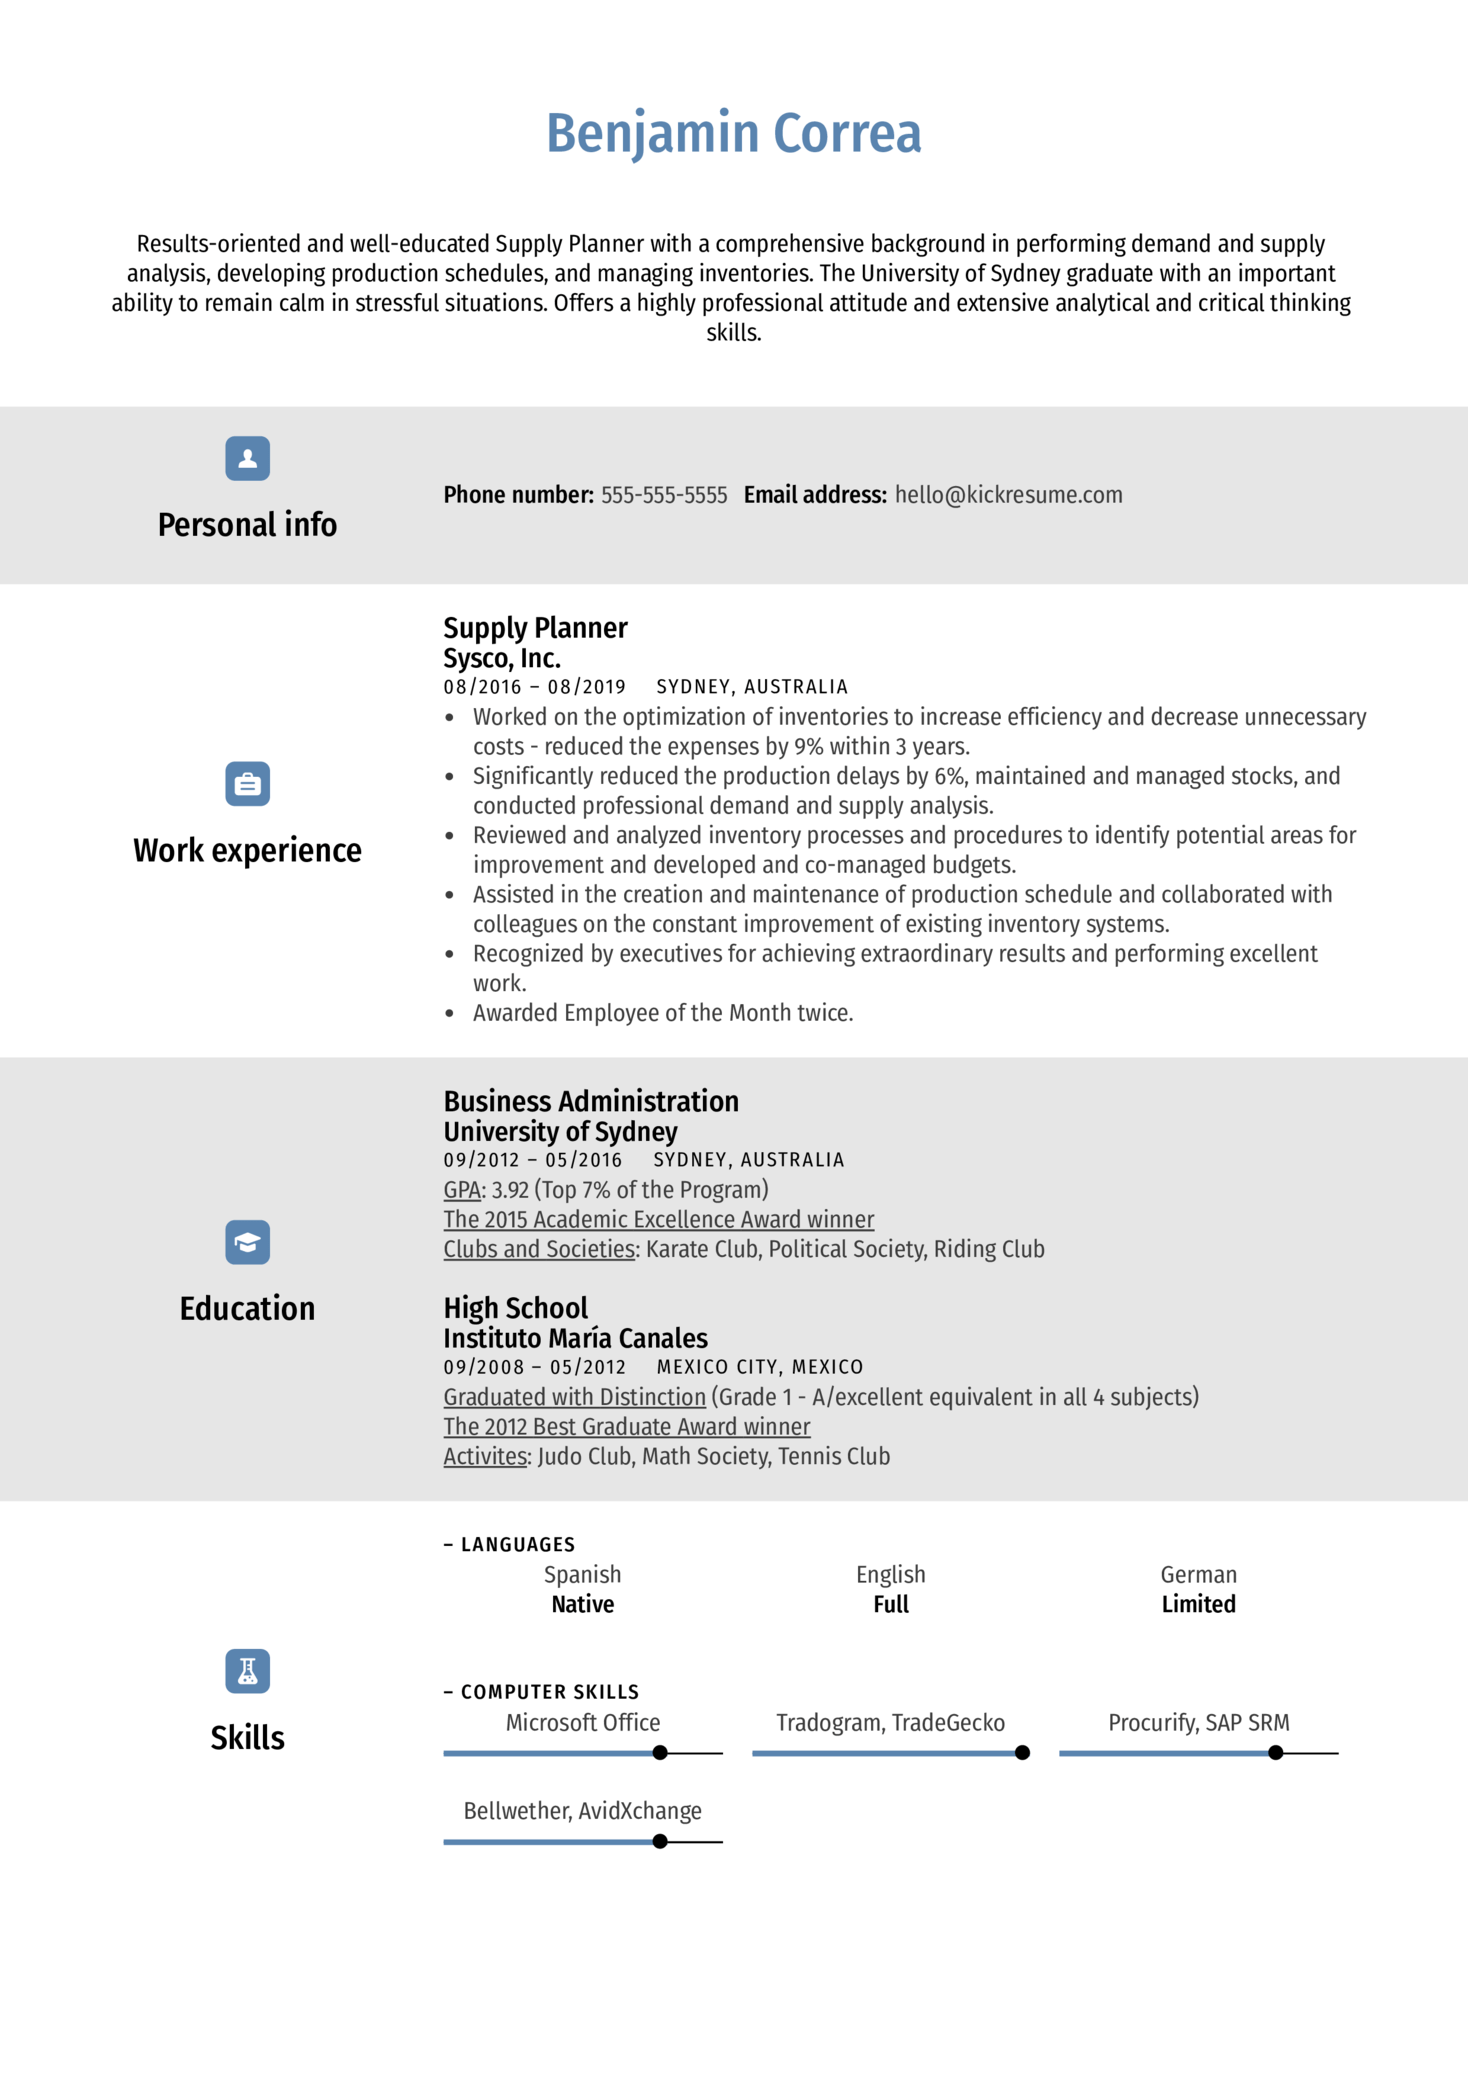 Supply Planner Resume Example (parte 1)